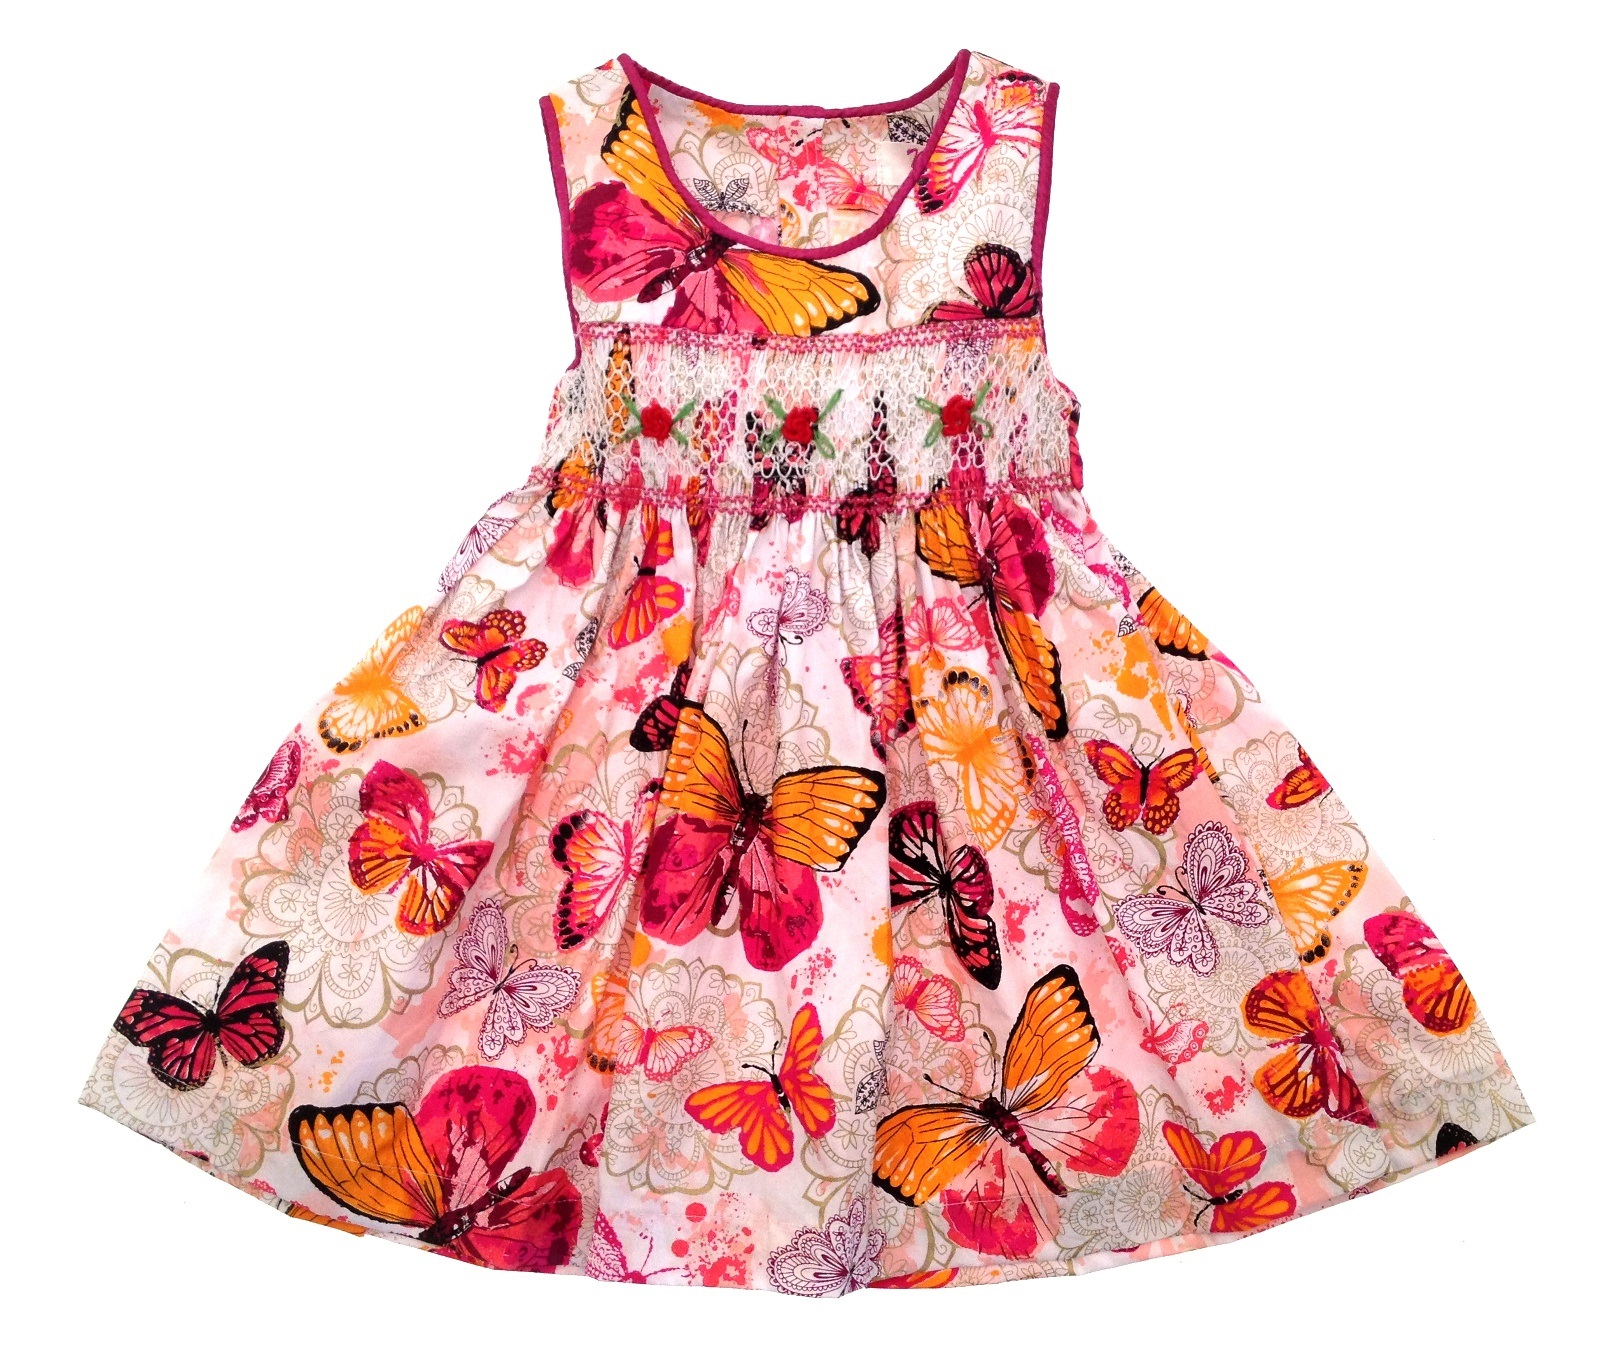 Girls Summer Dress Kids Toddlers Frilly Sundress Sleeveless Party ...